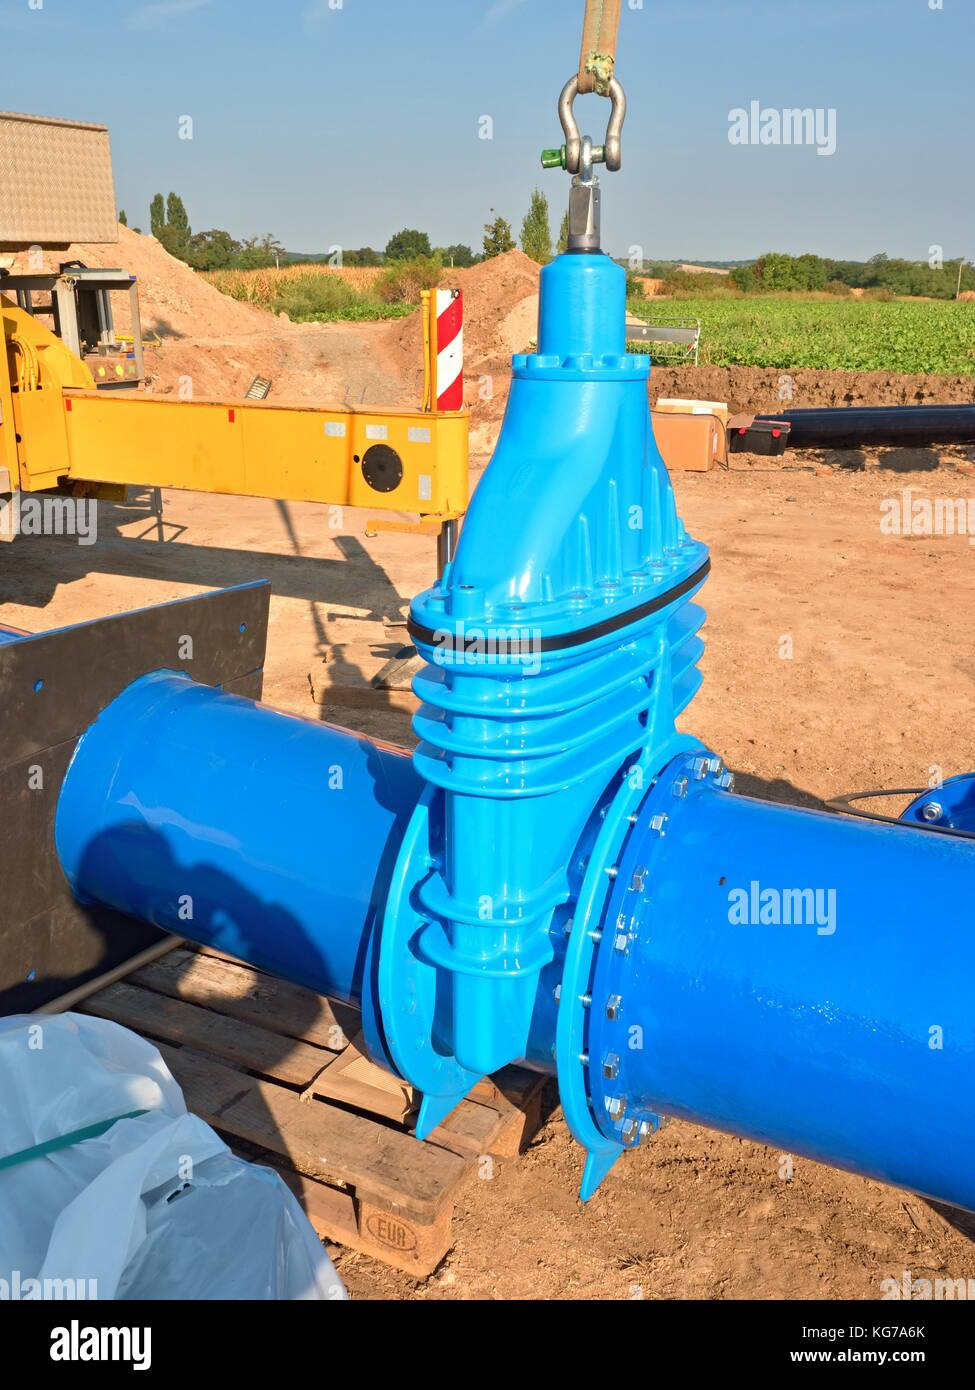 500mm big new drink water Gate valve joint with screws and nuts to pipe fitting. Piping repair, unit on wooden pallet, - Stock Image